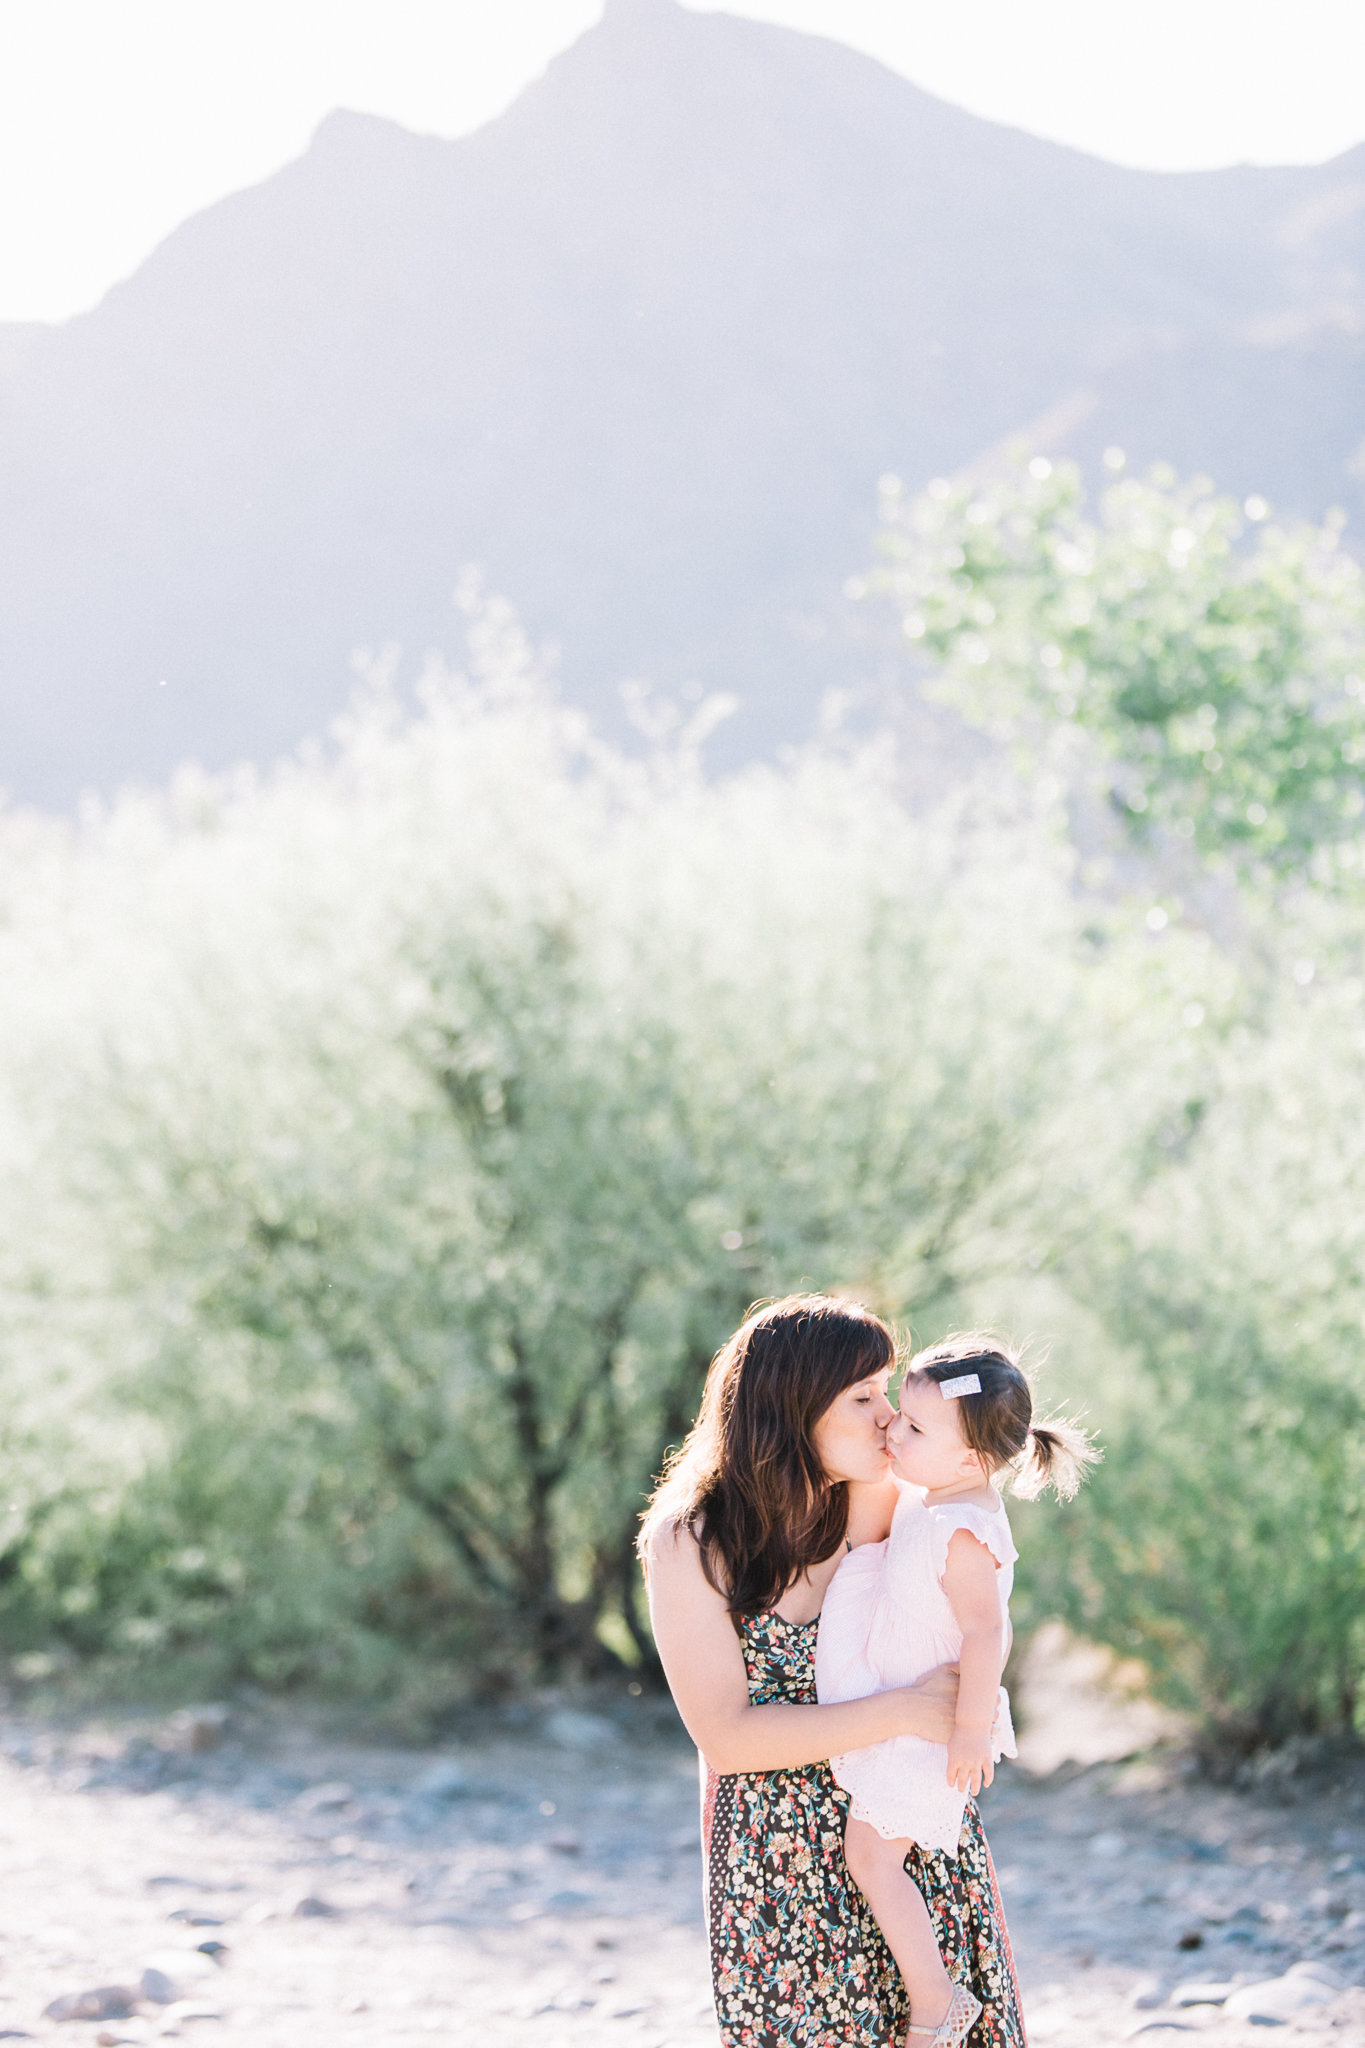 AlyKirkPhoto-Arizona-Family-Photographer-Phon-D-Sutton-Petrie-0005